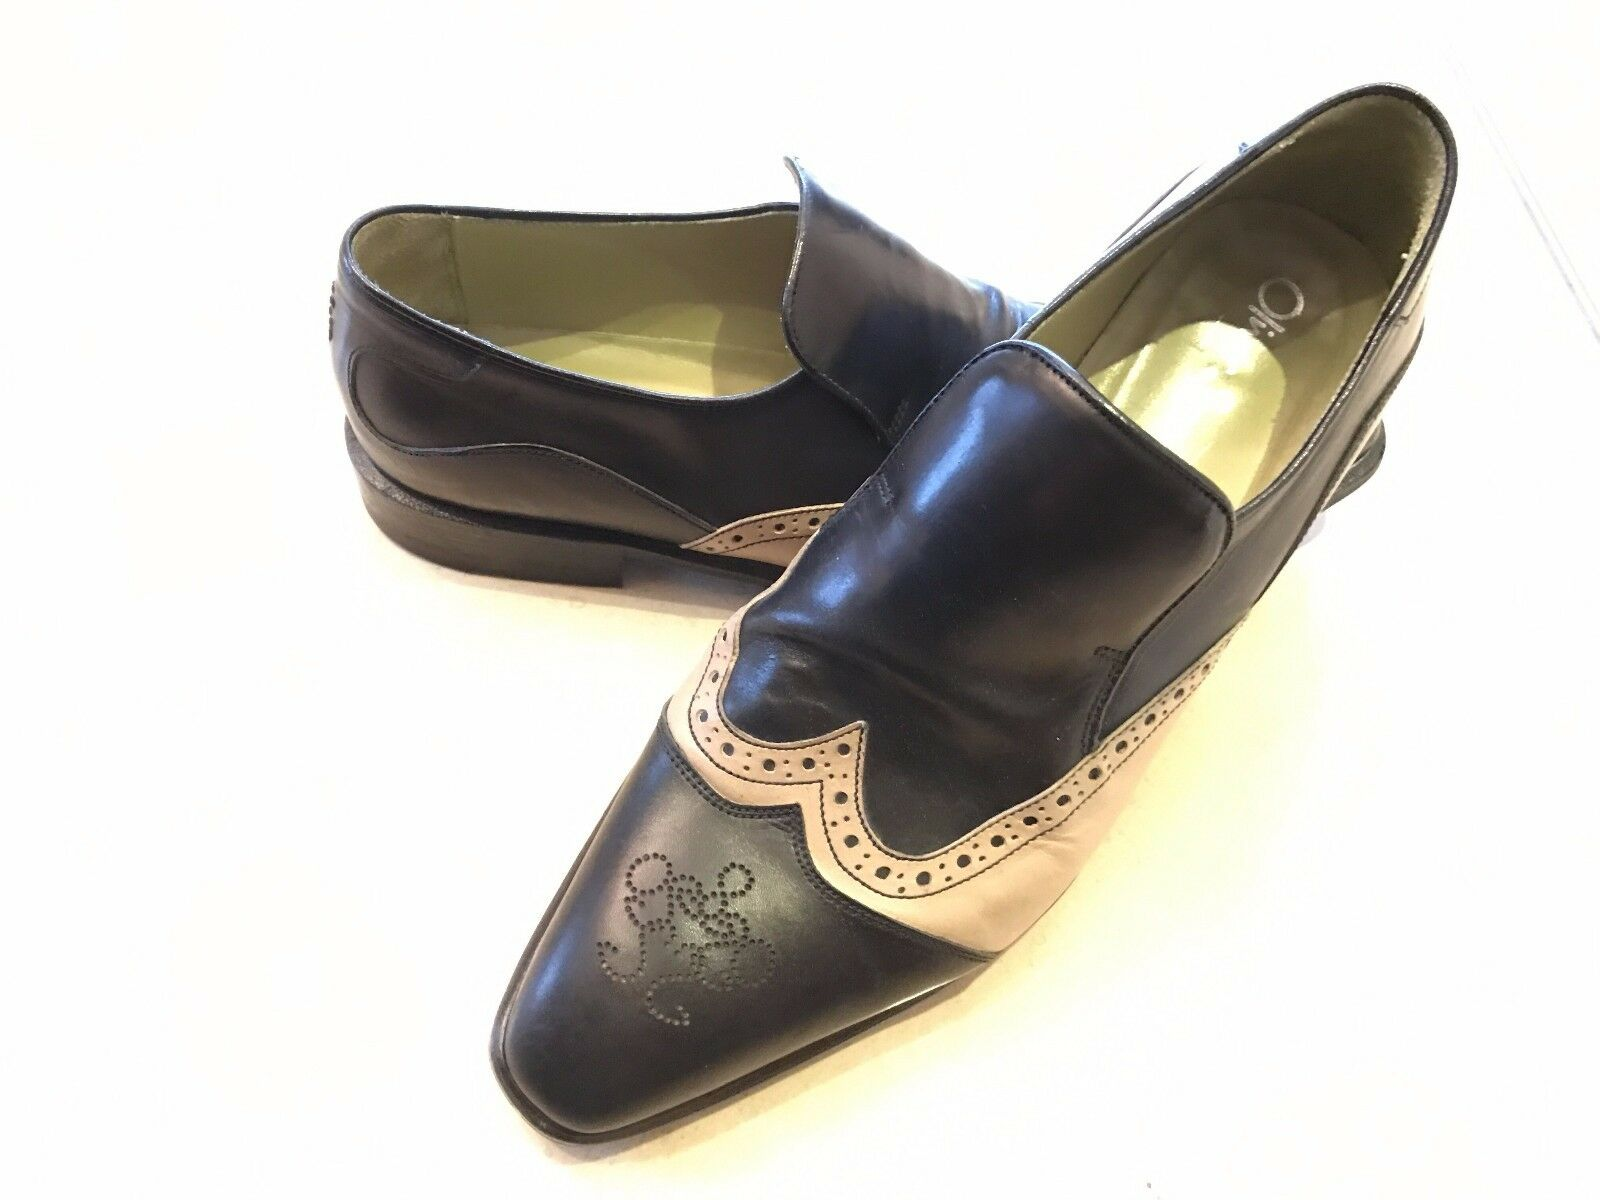 Oliver Sweeney Seagul Men's Shoes Size 8 - Rare Shoes made in Italy